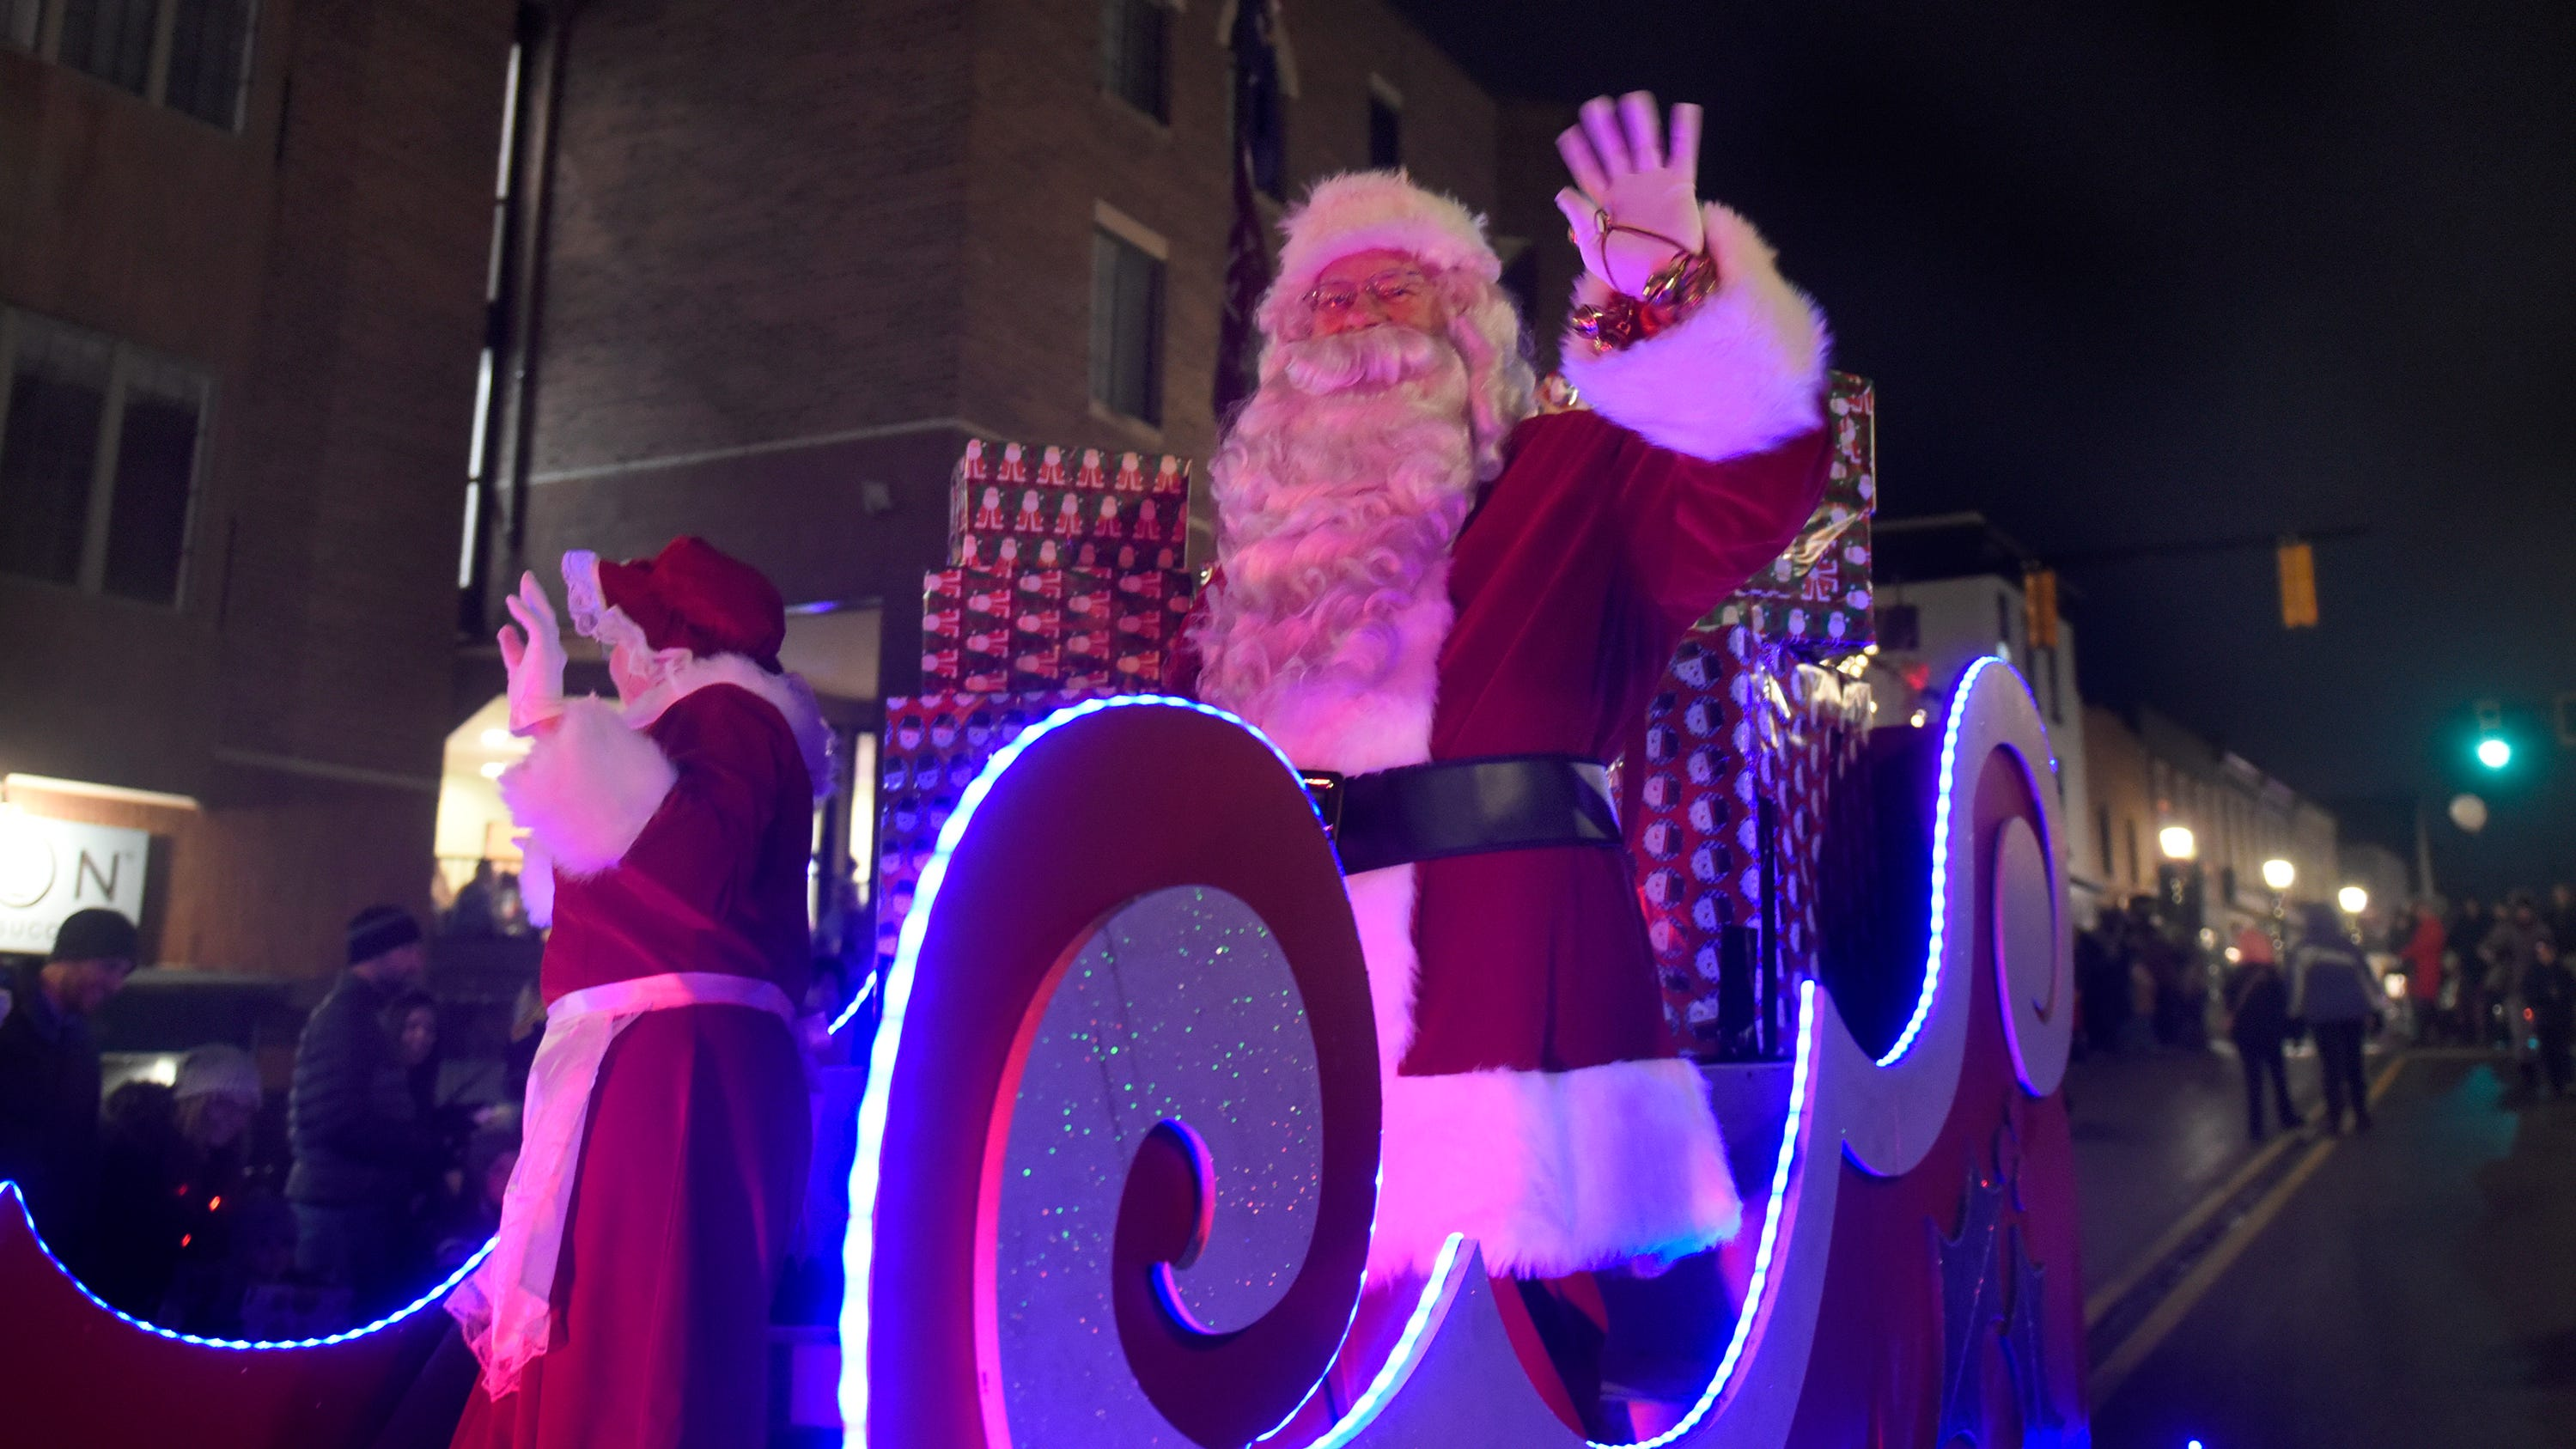 Mr. and Mrs. Claus arrive during the Holiday Lighted Parade in downtown Northville, Nov. 16, 2018.